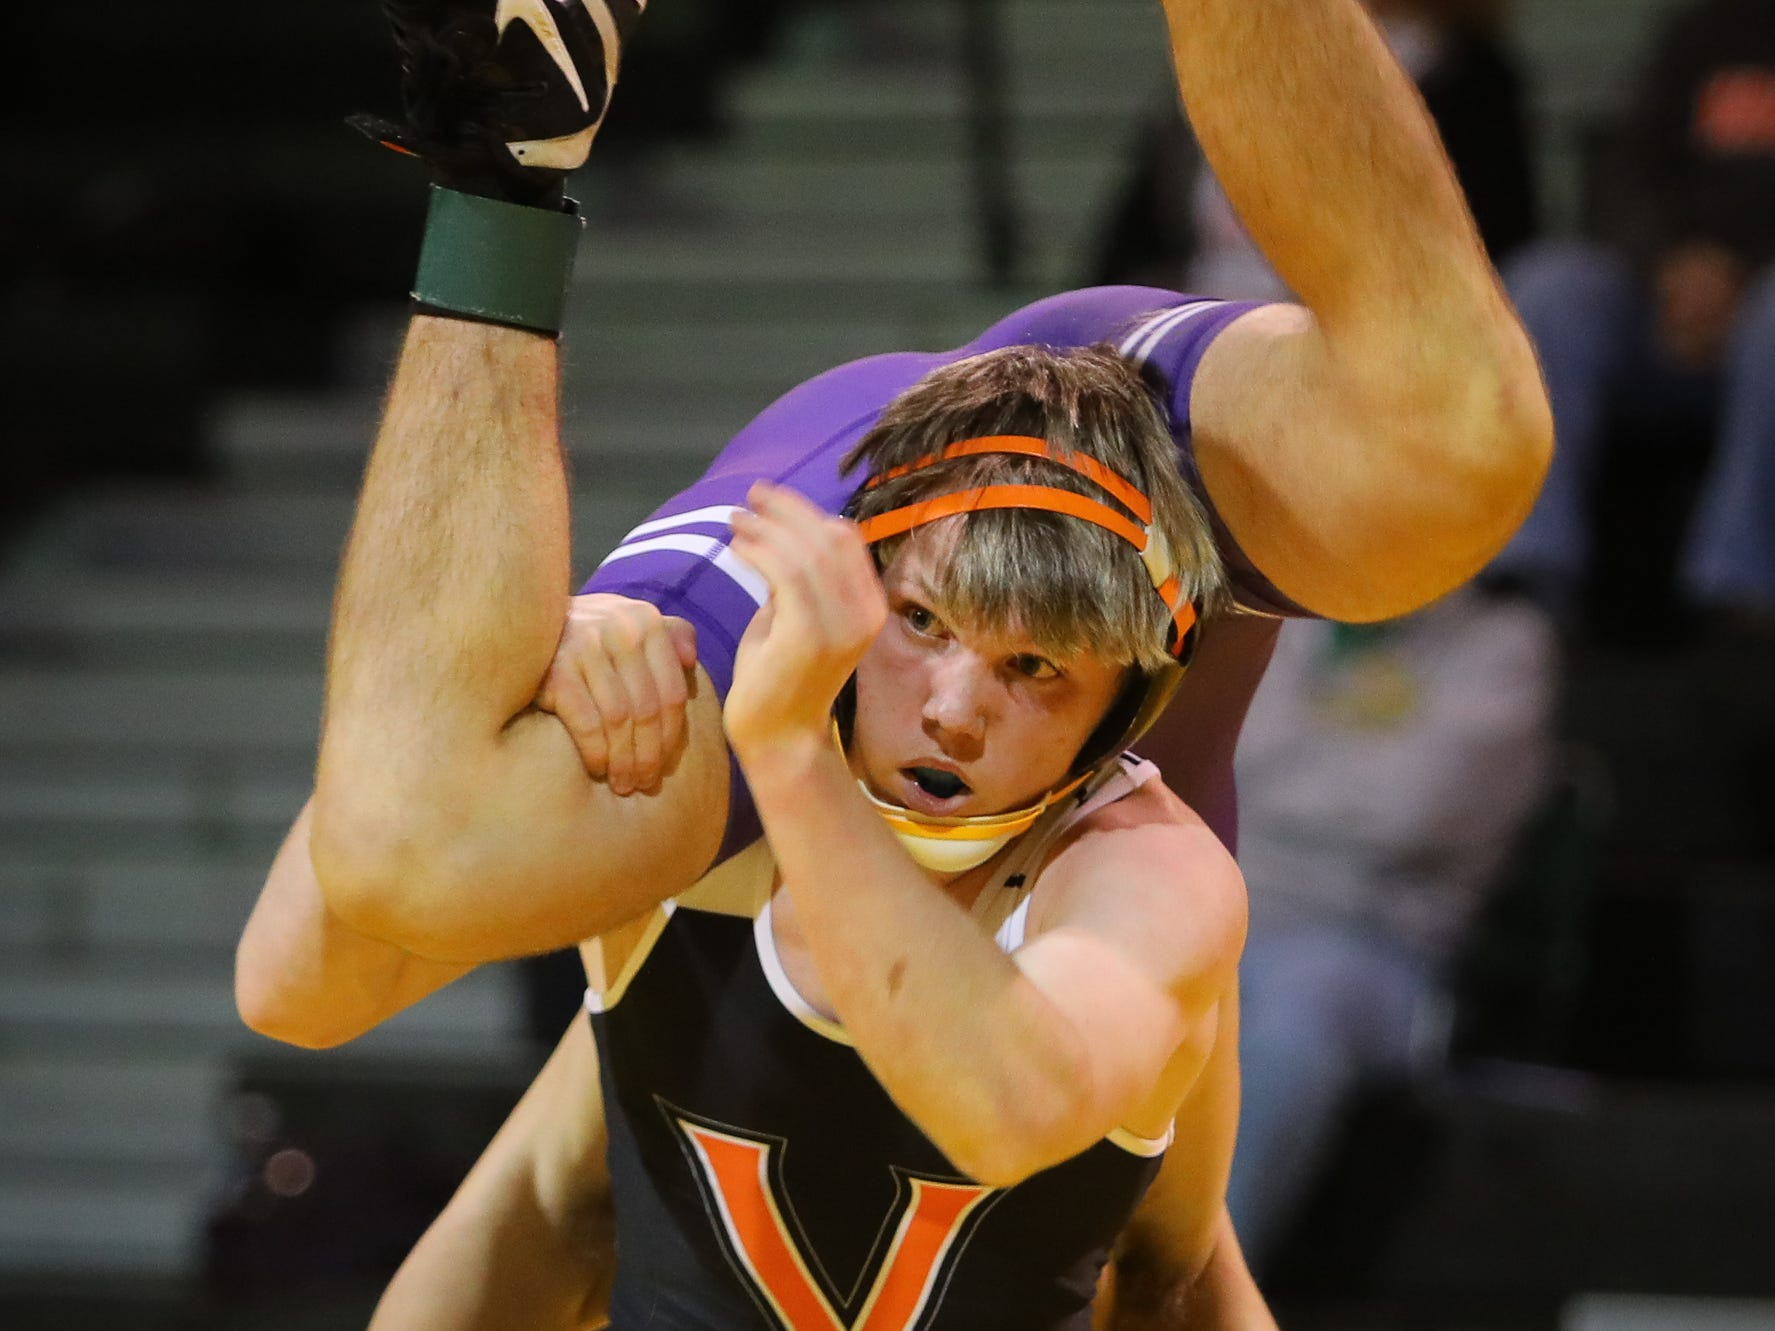 Valley freshman Caleb Corbin wrestles Waukee senior Mason Seifried in the 152-weight class during a high school wrestling meet between the Valley Tigers and the Waukee Warriors at Waukee High School on Dec. 20, 2018 in Waukee, Iowa.